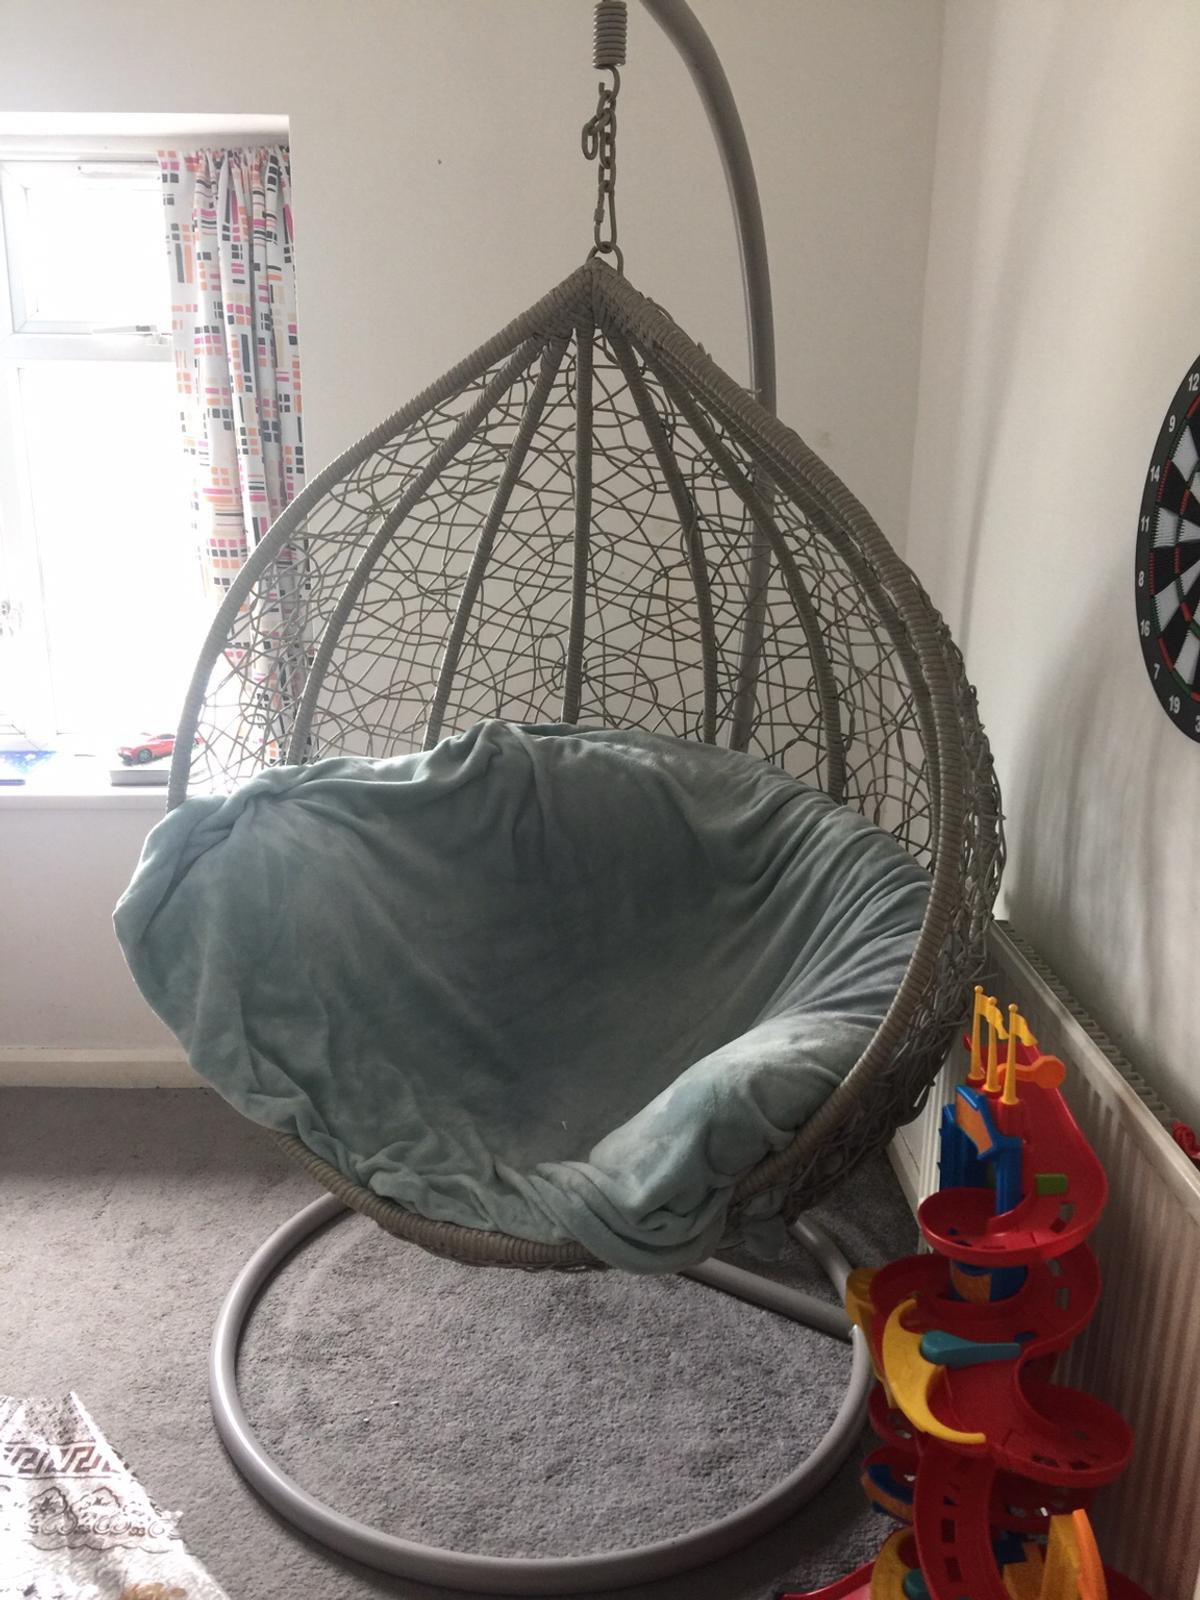 Hanging Egg Chair In Rm8 Dagenham For 115 00 For Sale Shpock